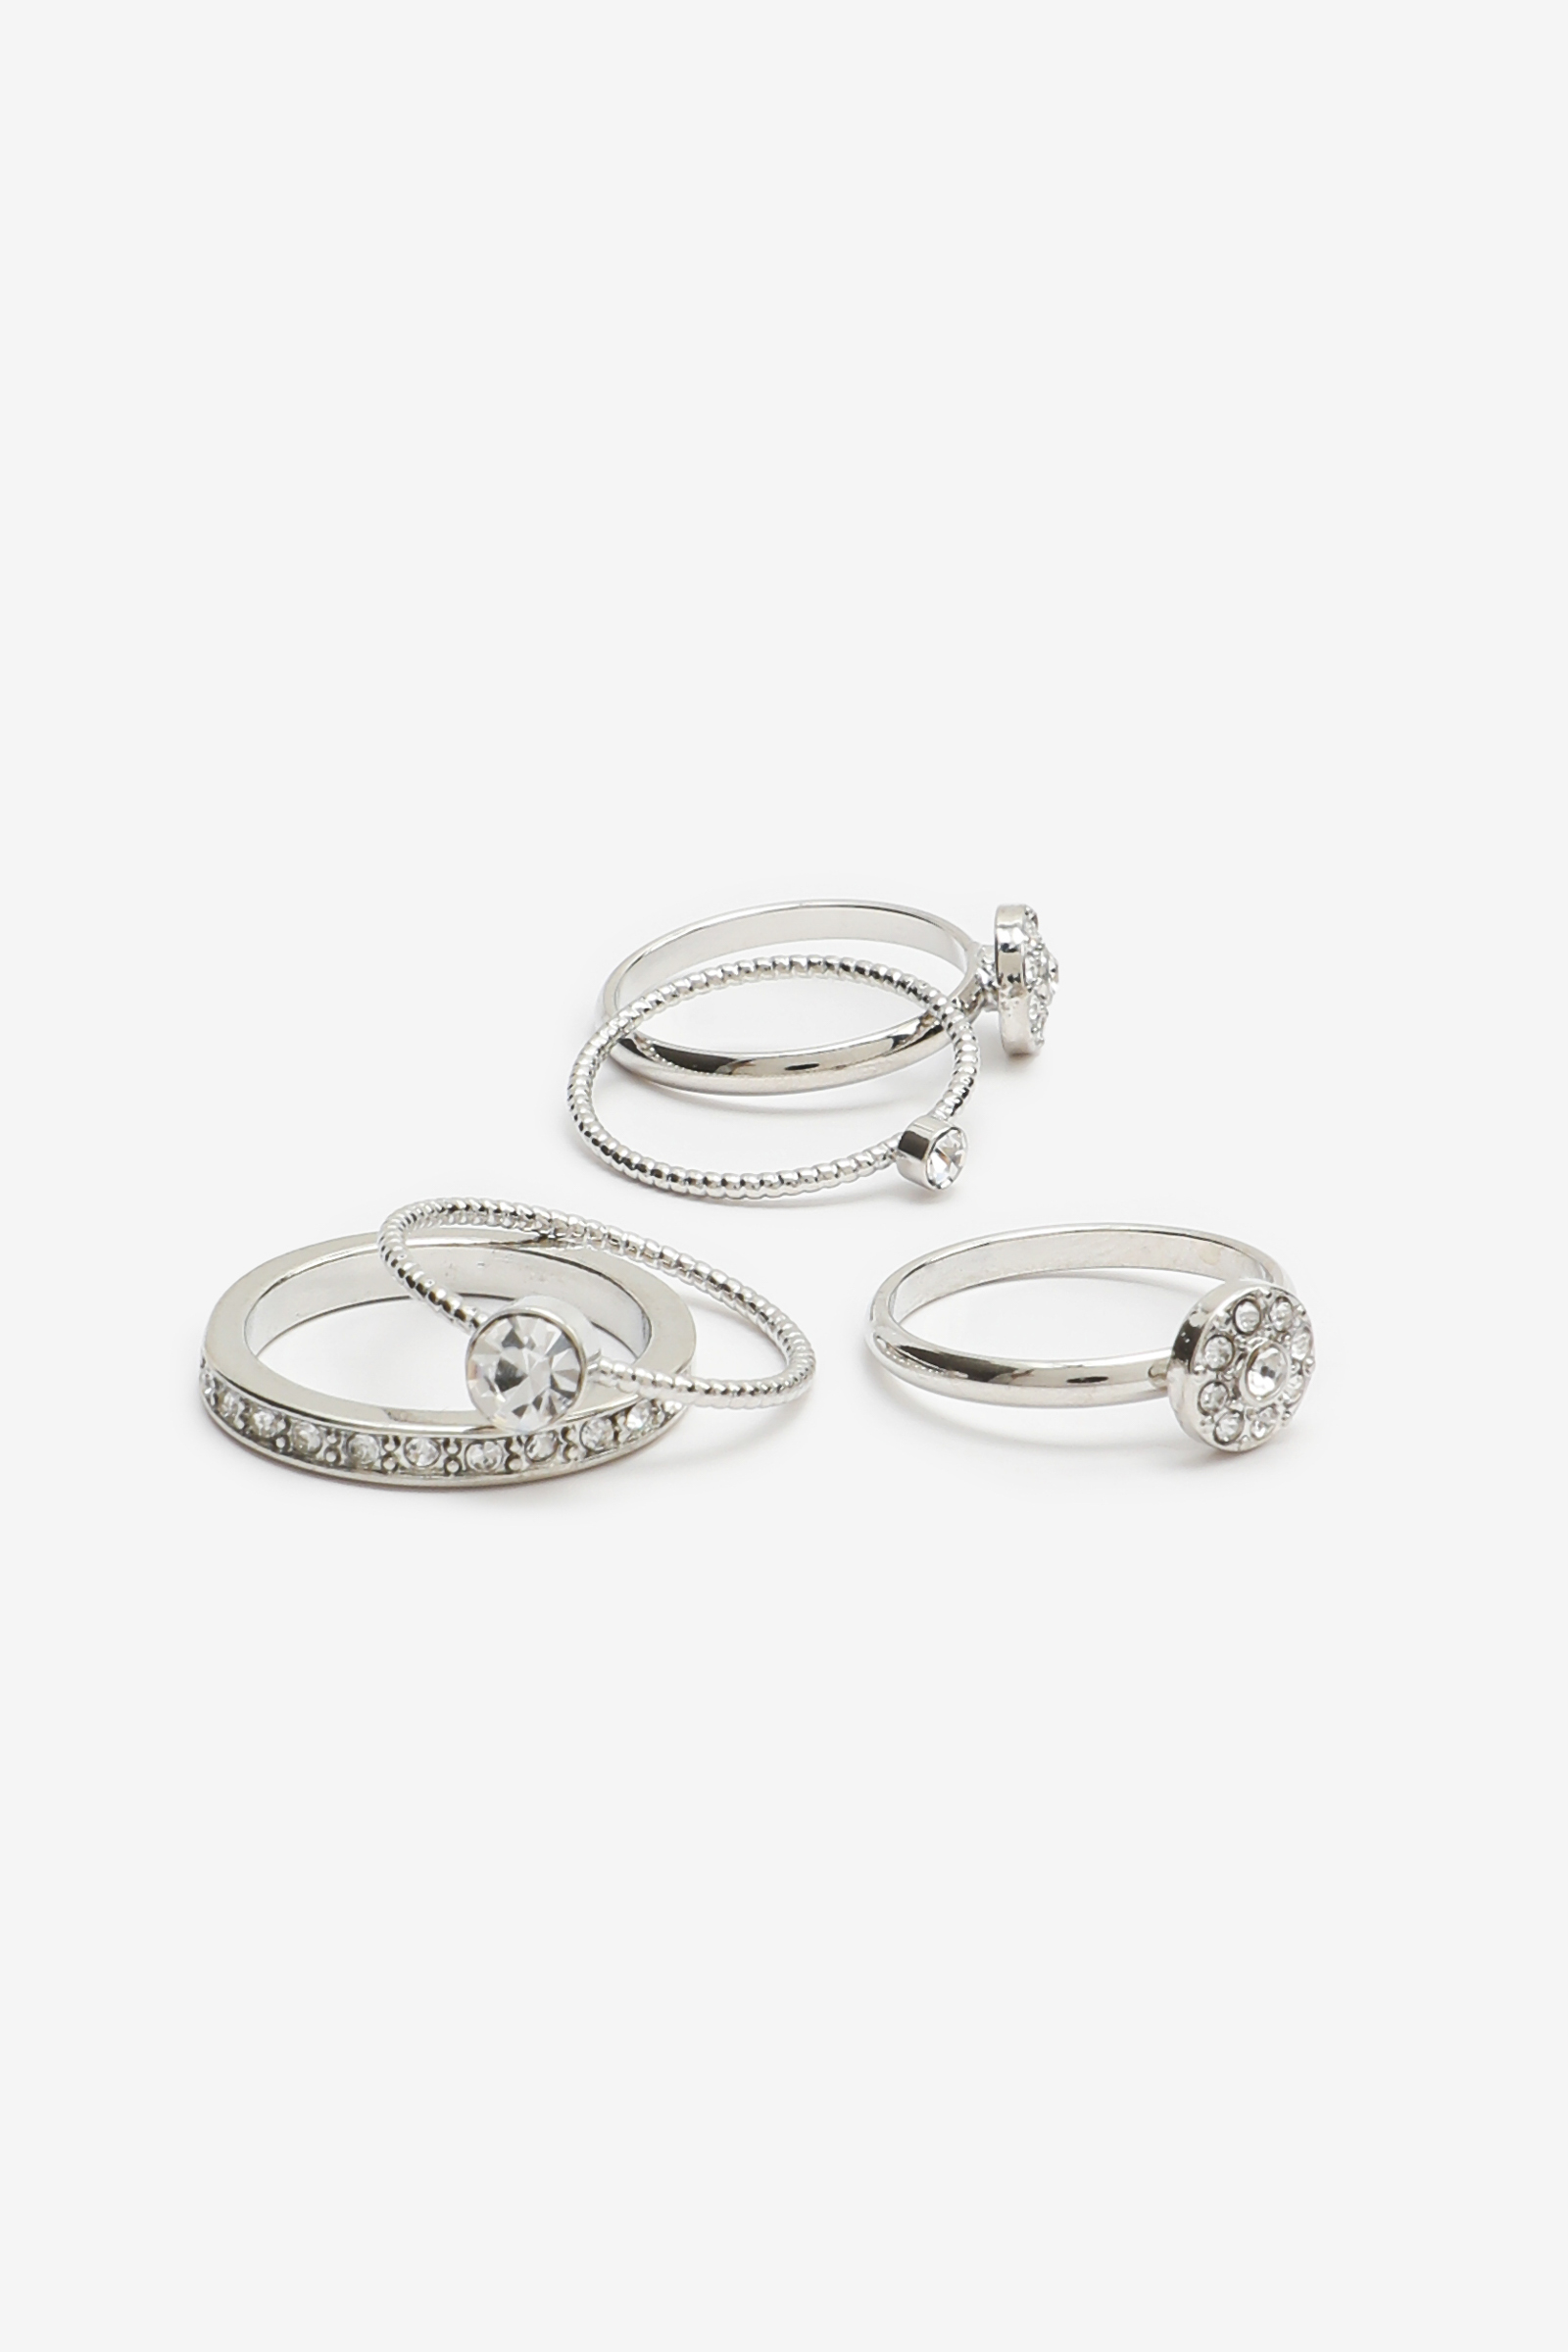 Pack of Rings with Stones